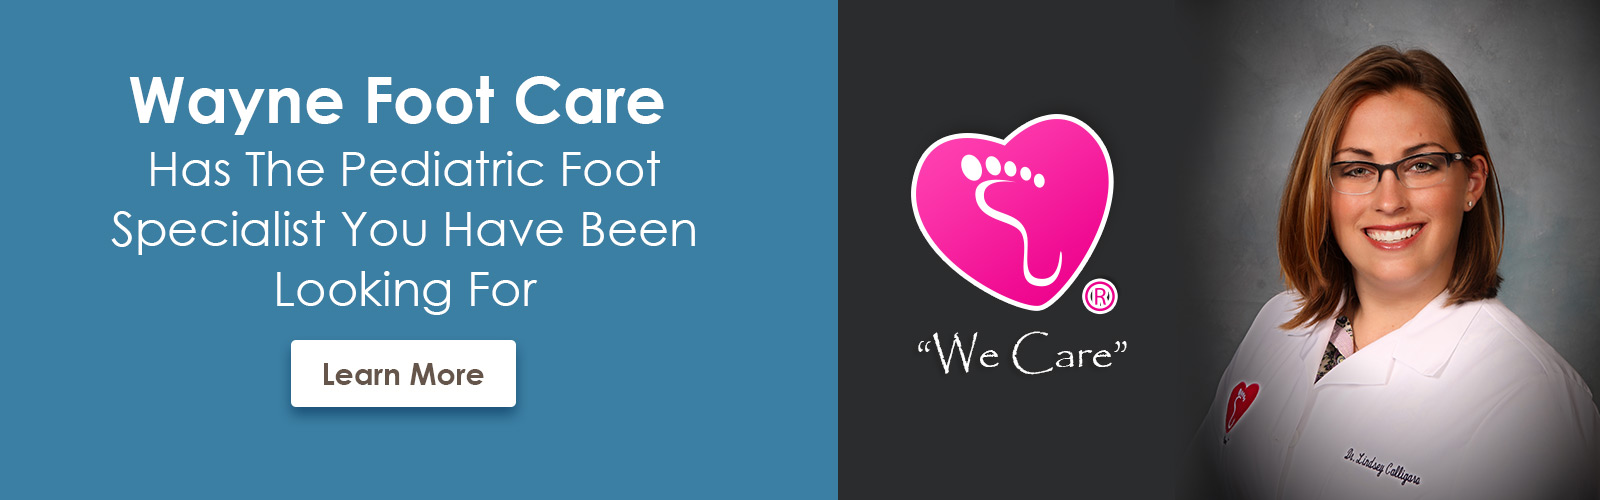 wayne nj podiatrist